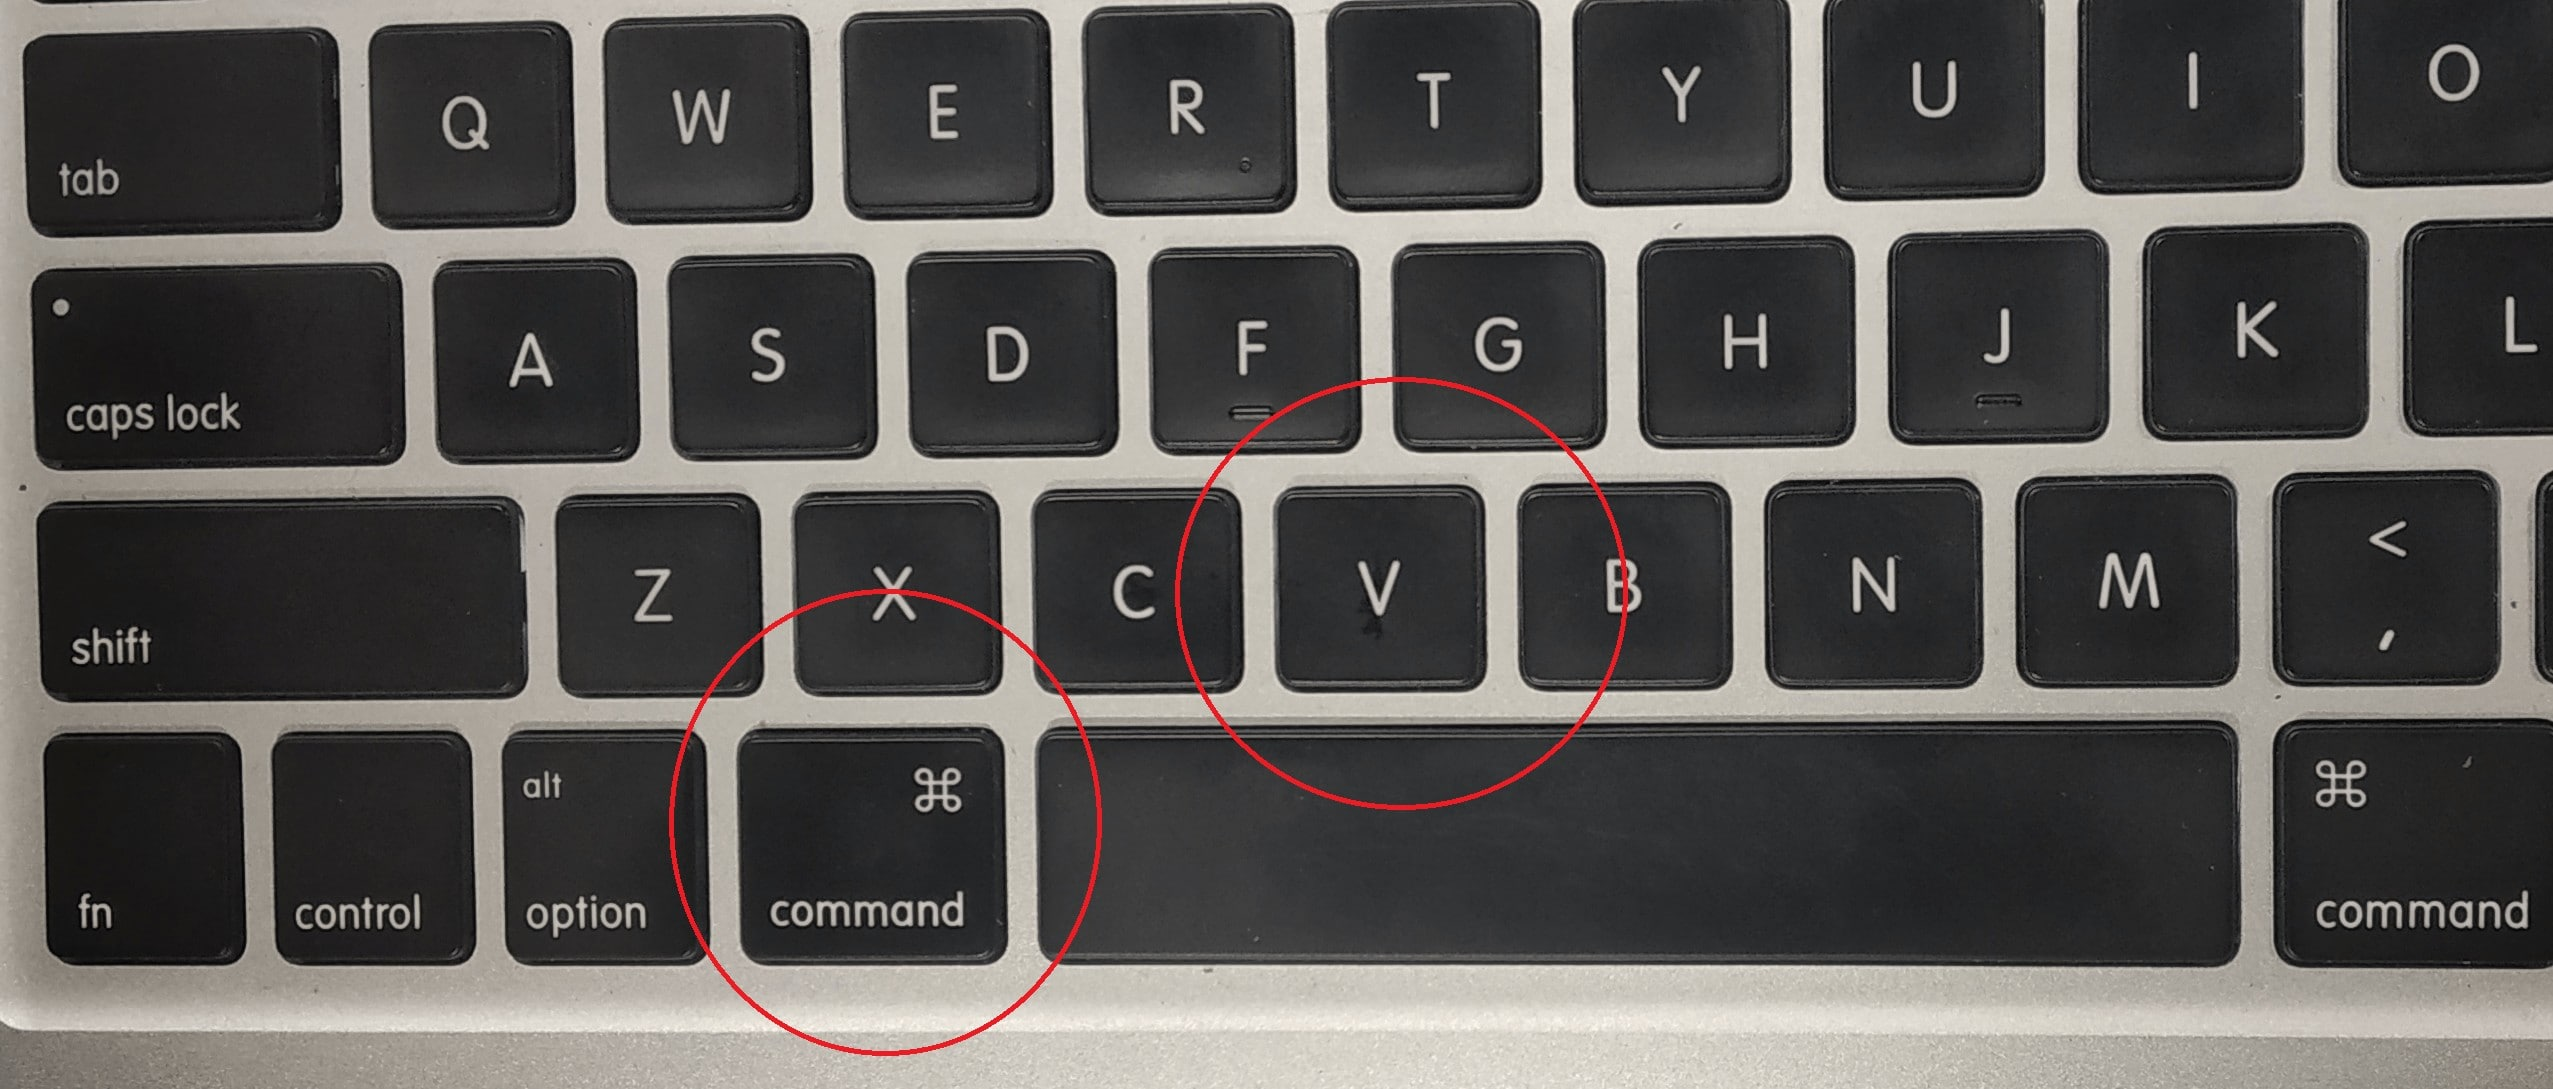 How To Paste On A Macbook